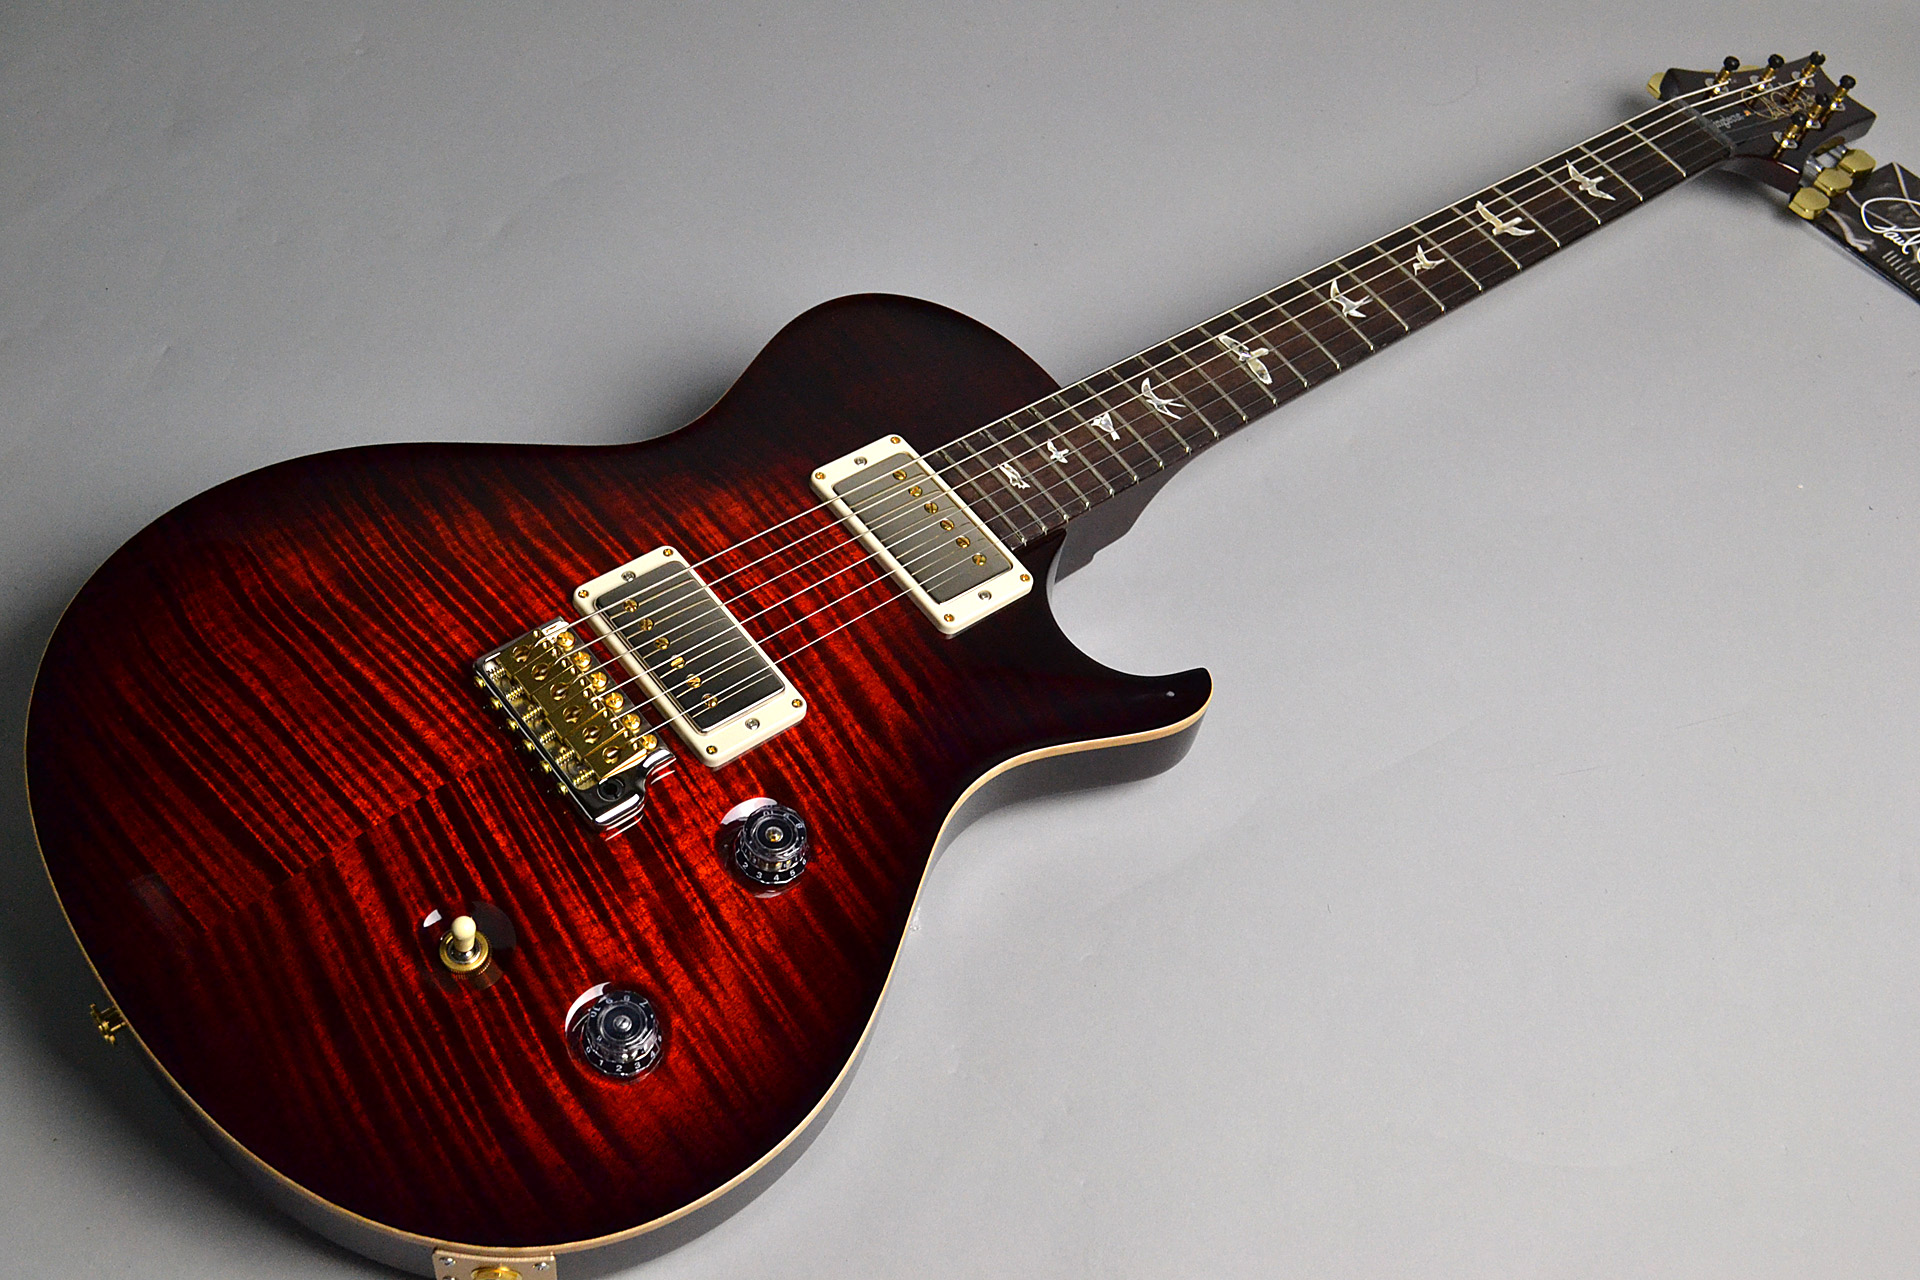 SINGLECUT TREM Wide Fat Neck Wood Library Fire Red Burst